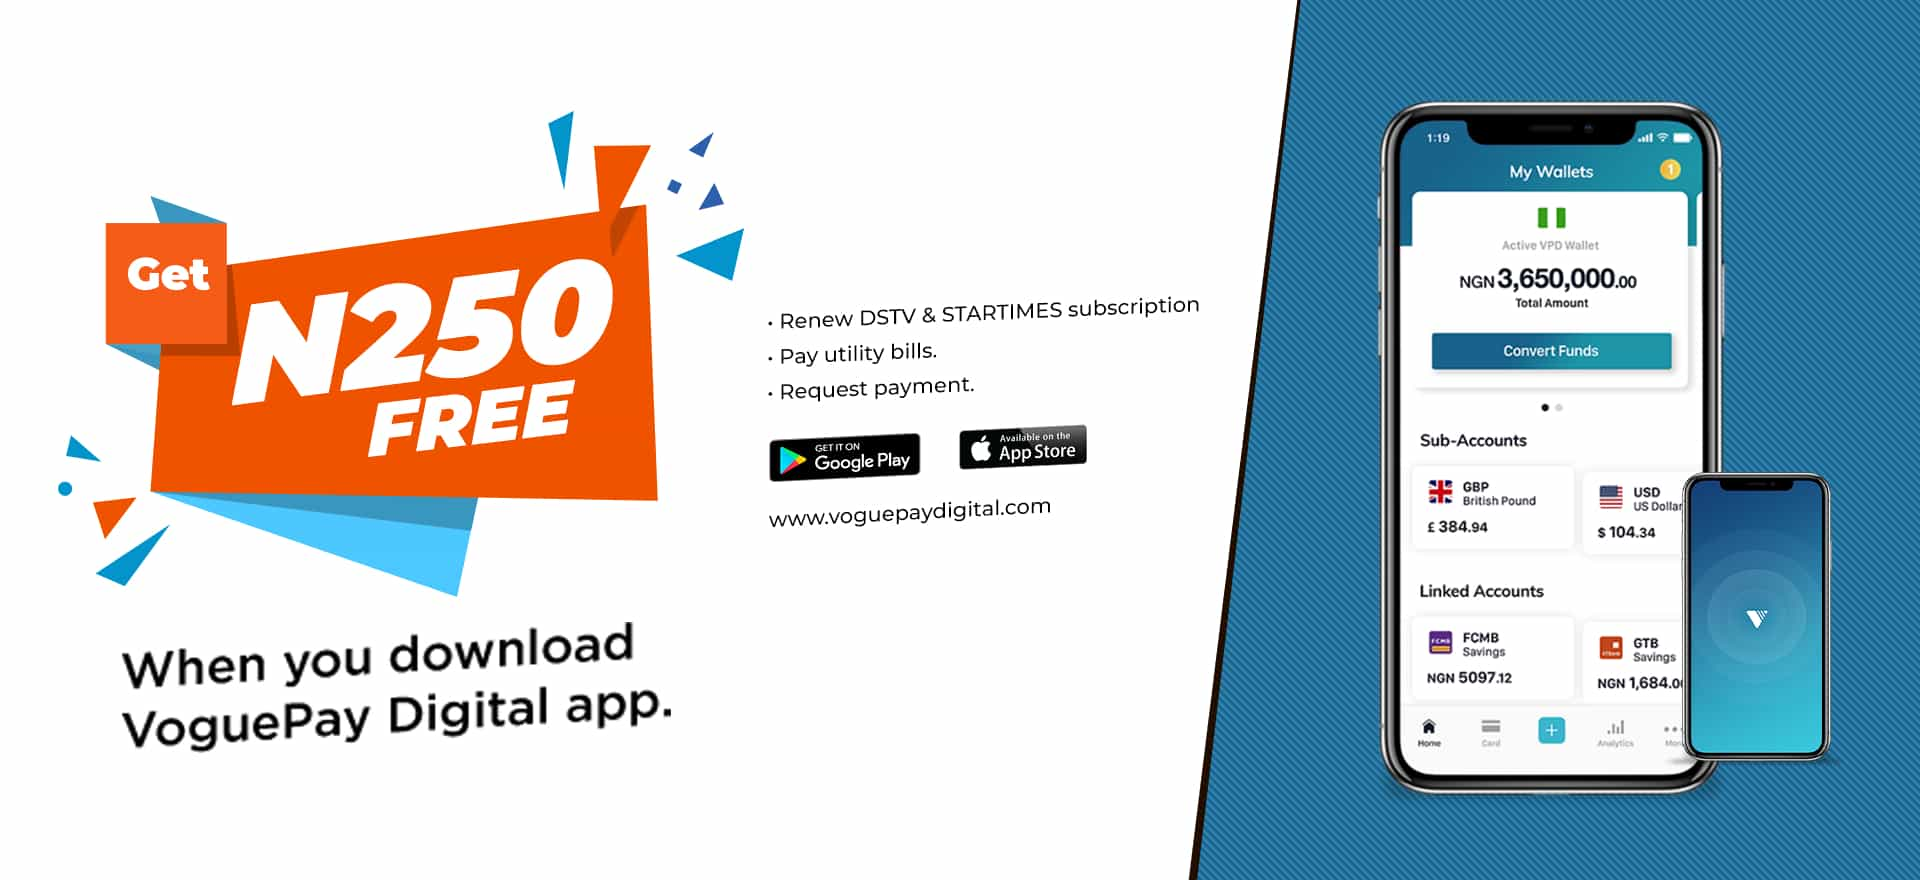 Download the vpd app now